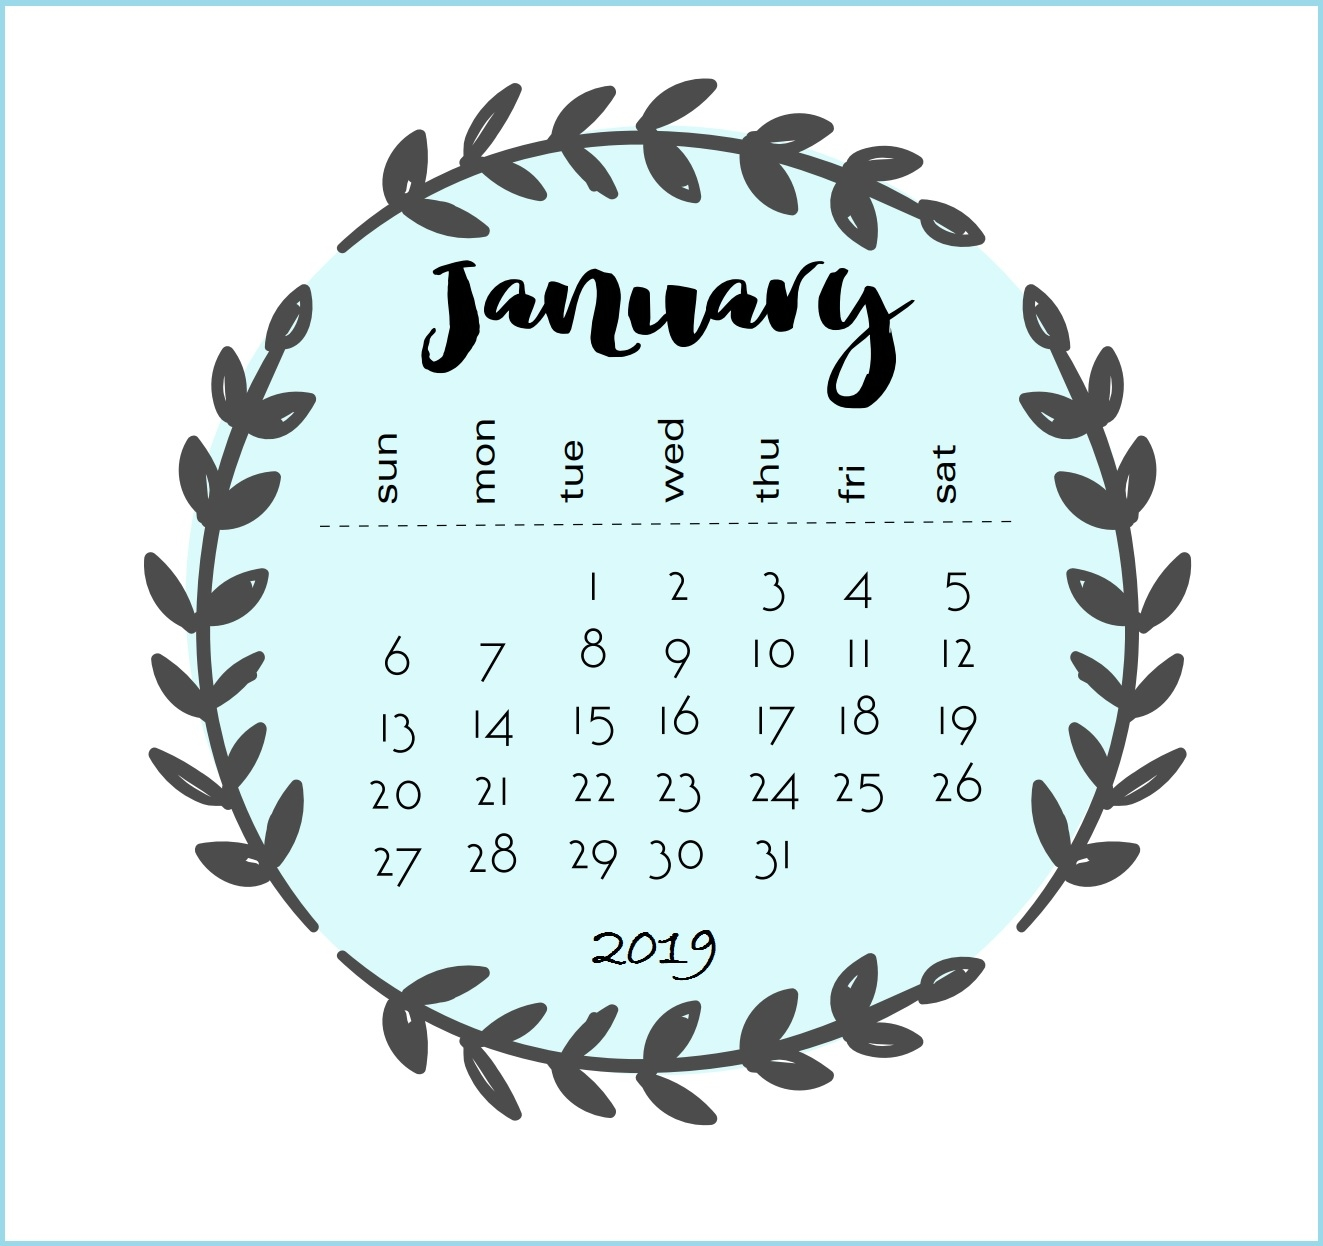 best january 2019 calendar designs ::January 2019 iPhone Calendar